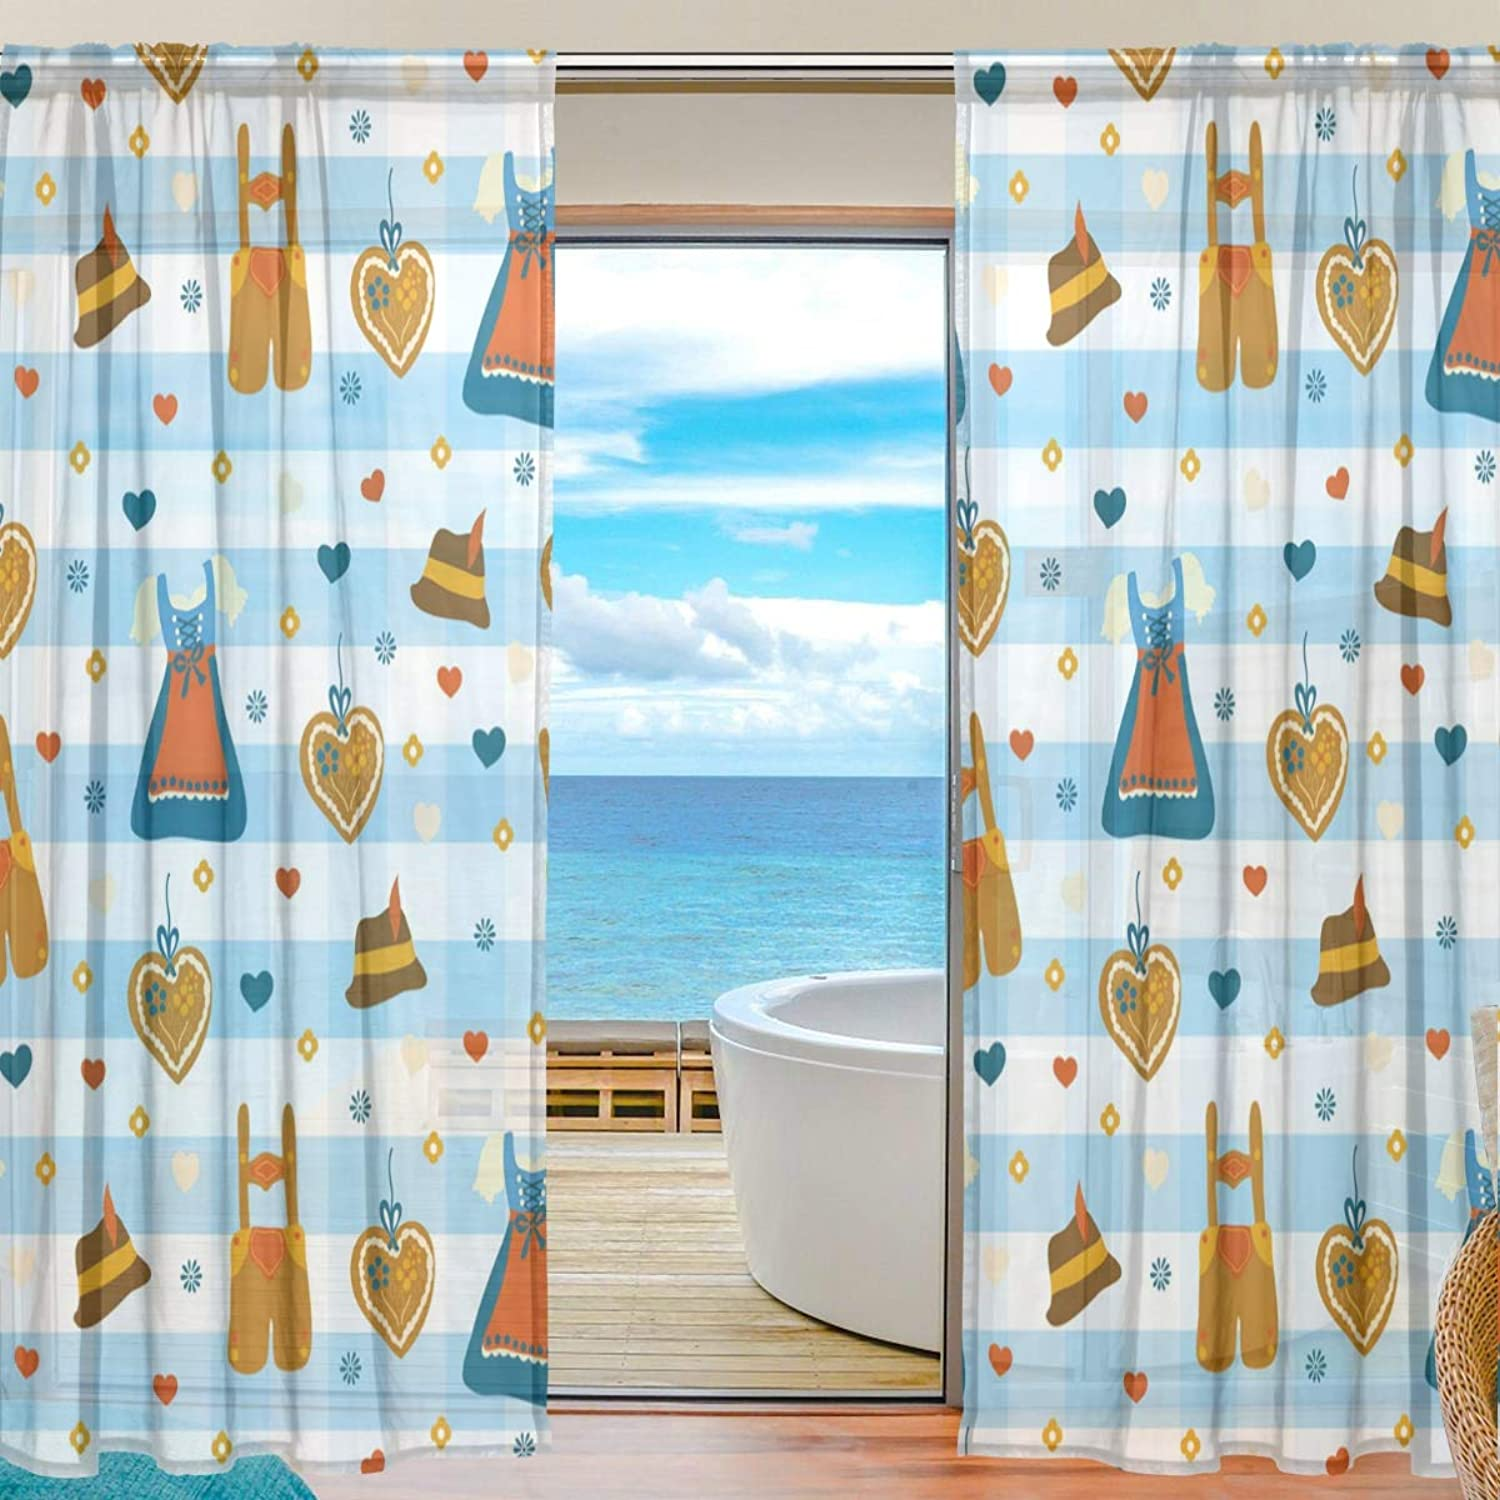 bluee and White Plaid Clothing 2 Pieces Curtain Panel 55 x 78 inches for Bedroom Living Room